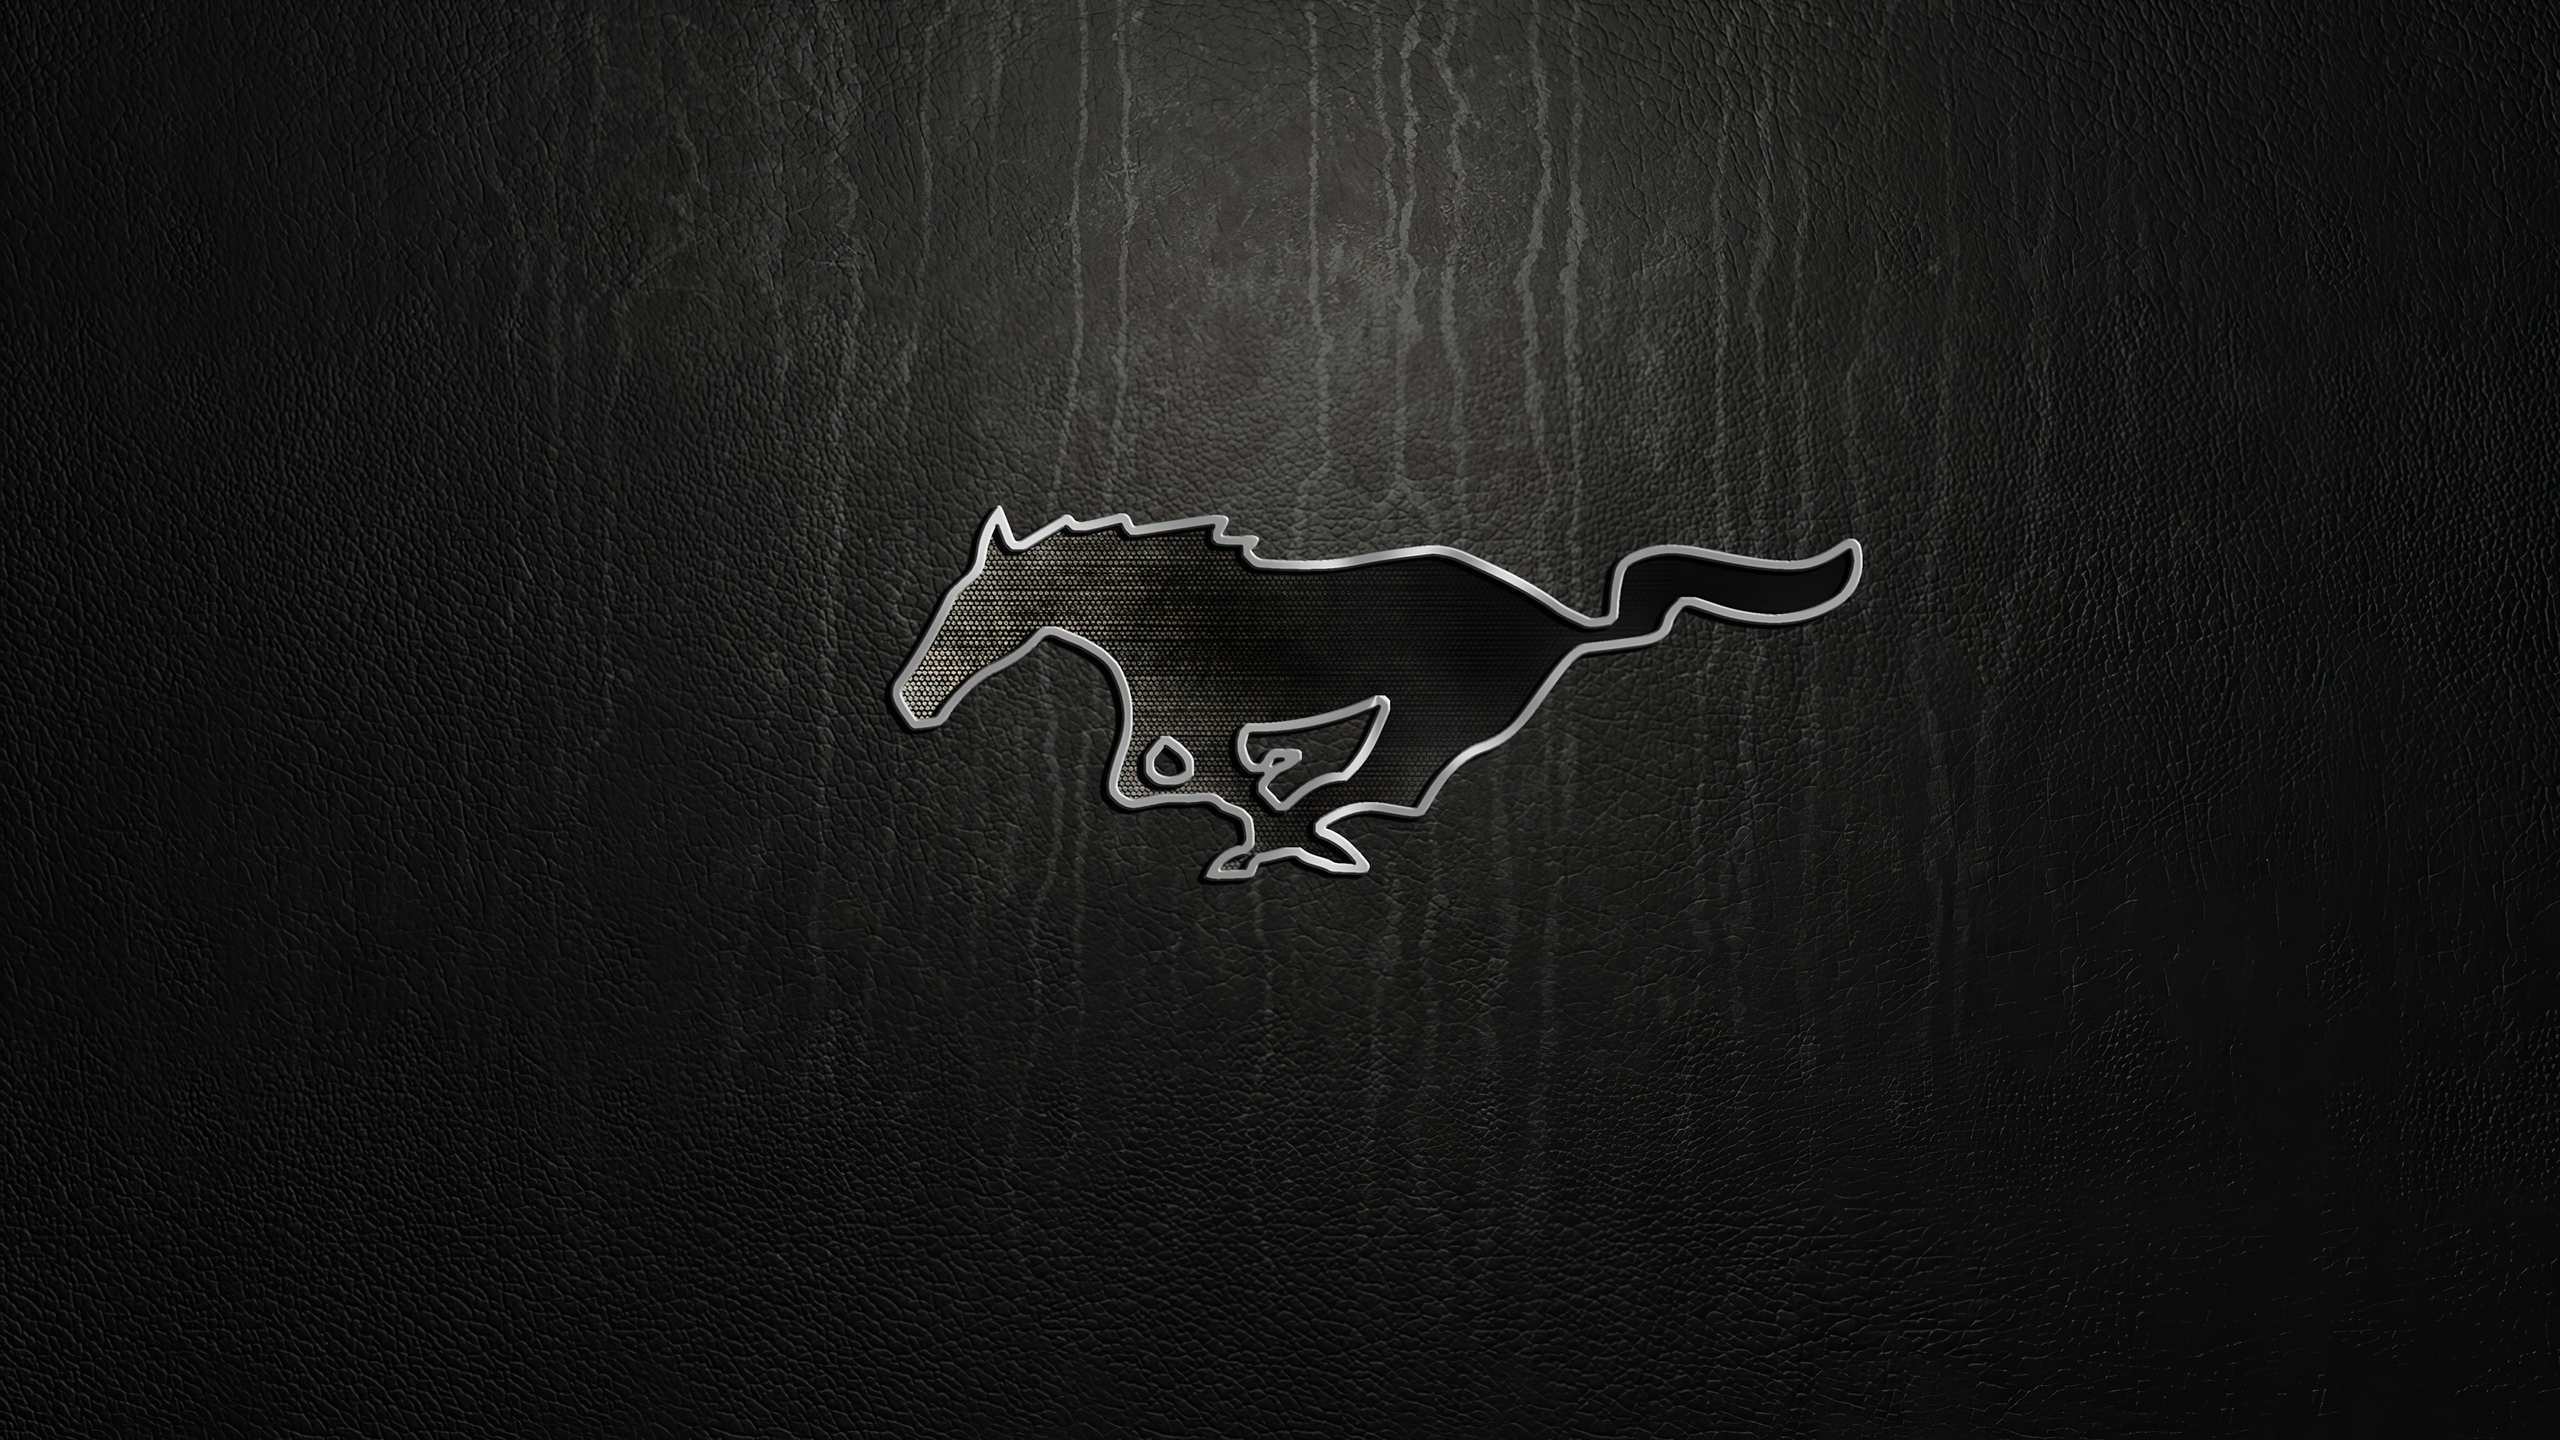 2560x1440 Ford Mustang Logo 4k 1440p Resolution Hd 4k Wallpapers Images Backgrounds Photos And Pictures